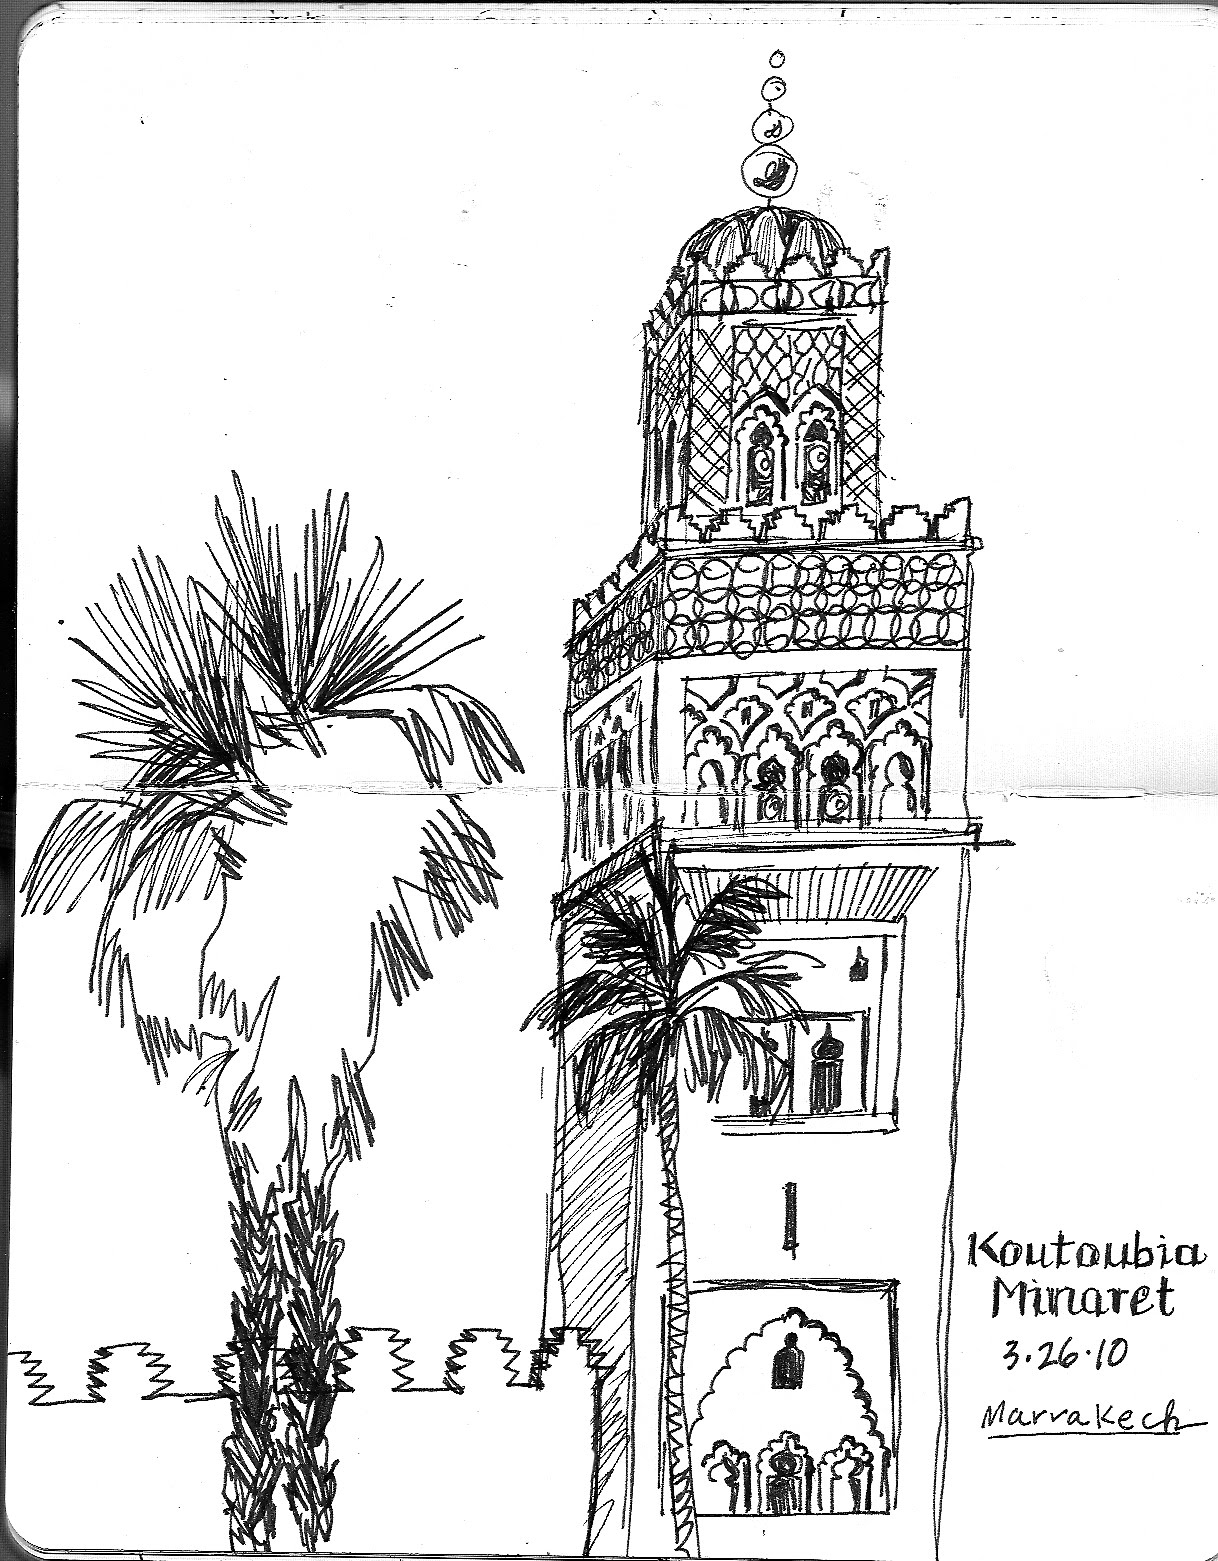 morocco coloring pages | Spirit of Drawing: More Drawings from Morocco - March 2010